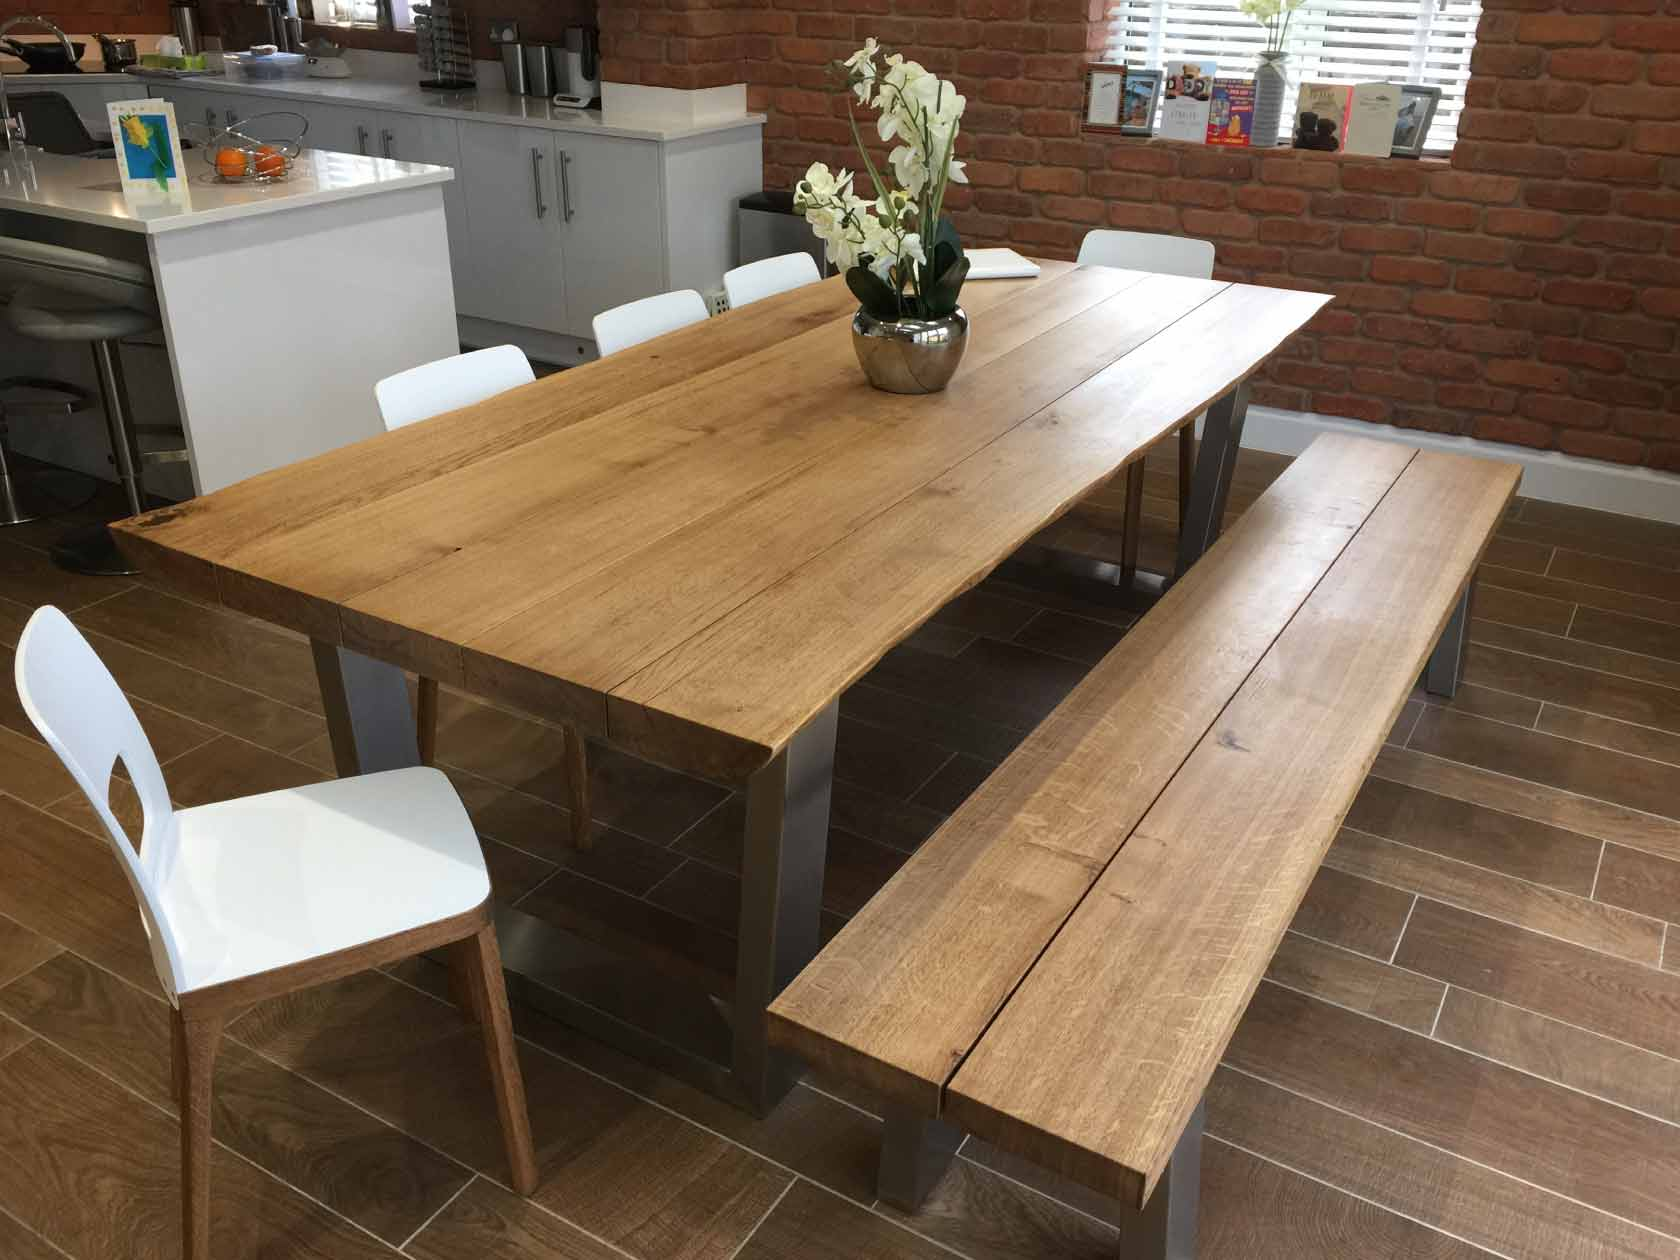 rustic-dining-table-from-abacus-tables-komodo-full-dining-set-2016-09-24